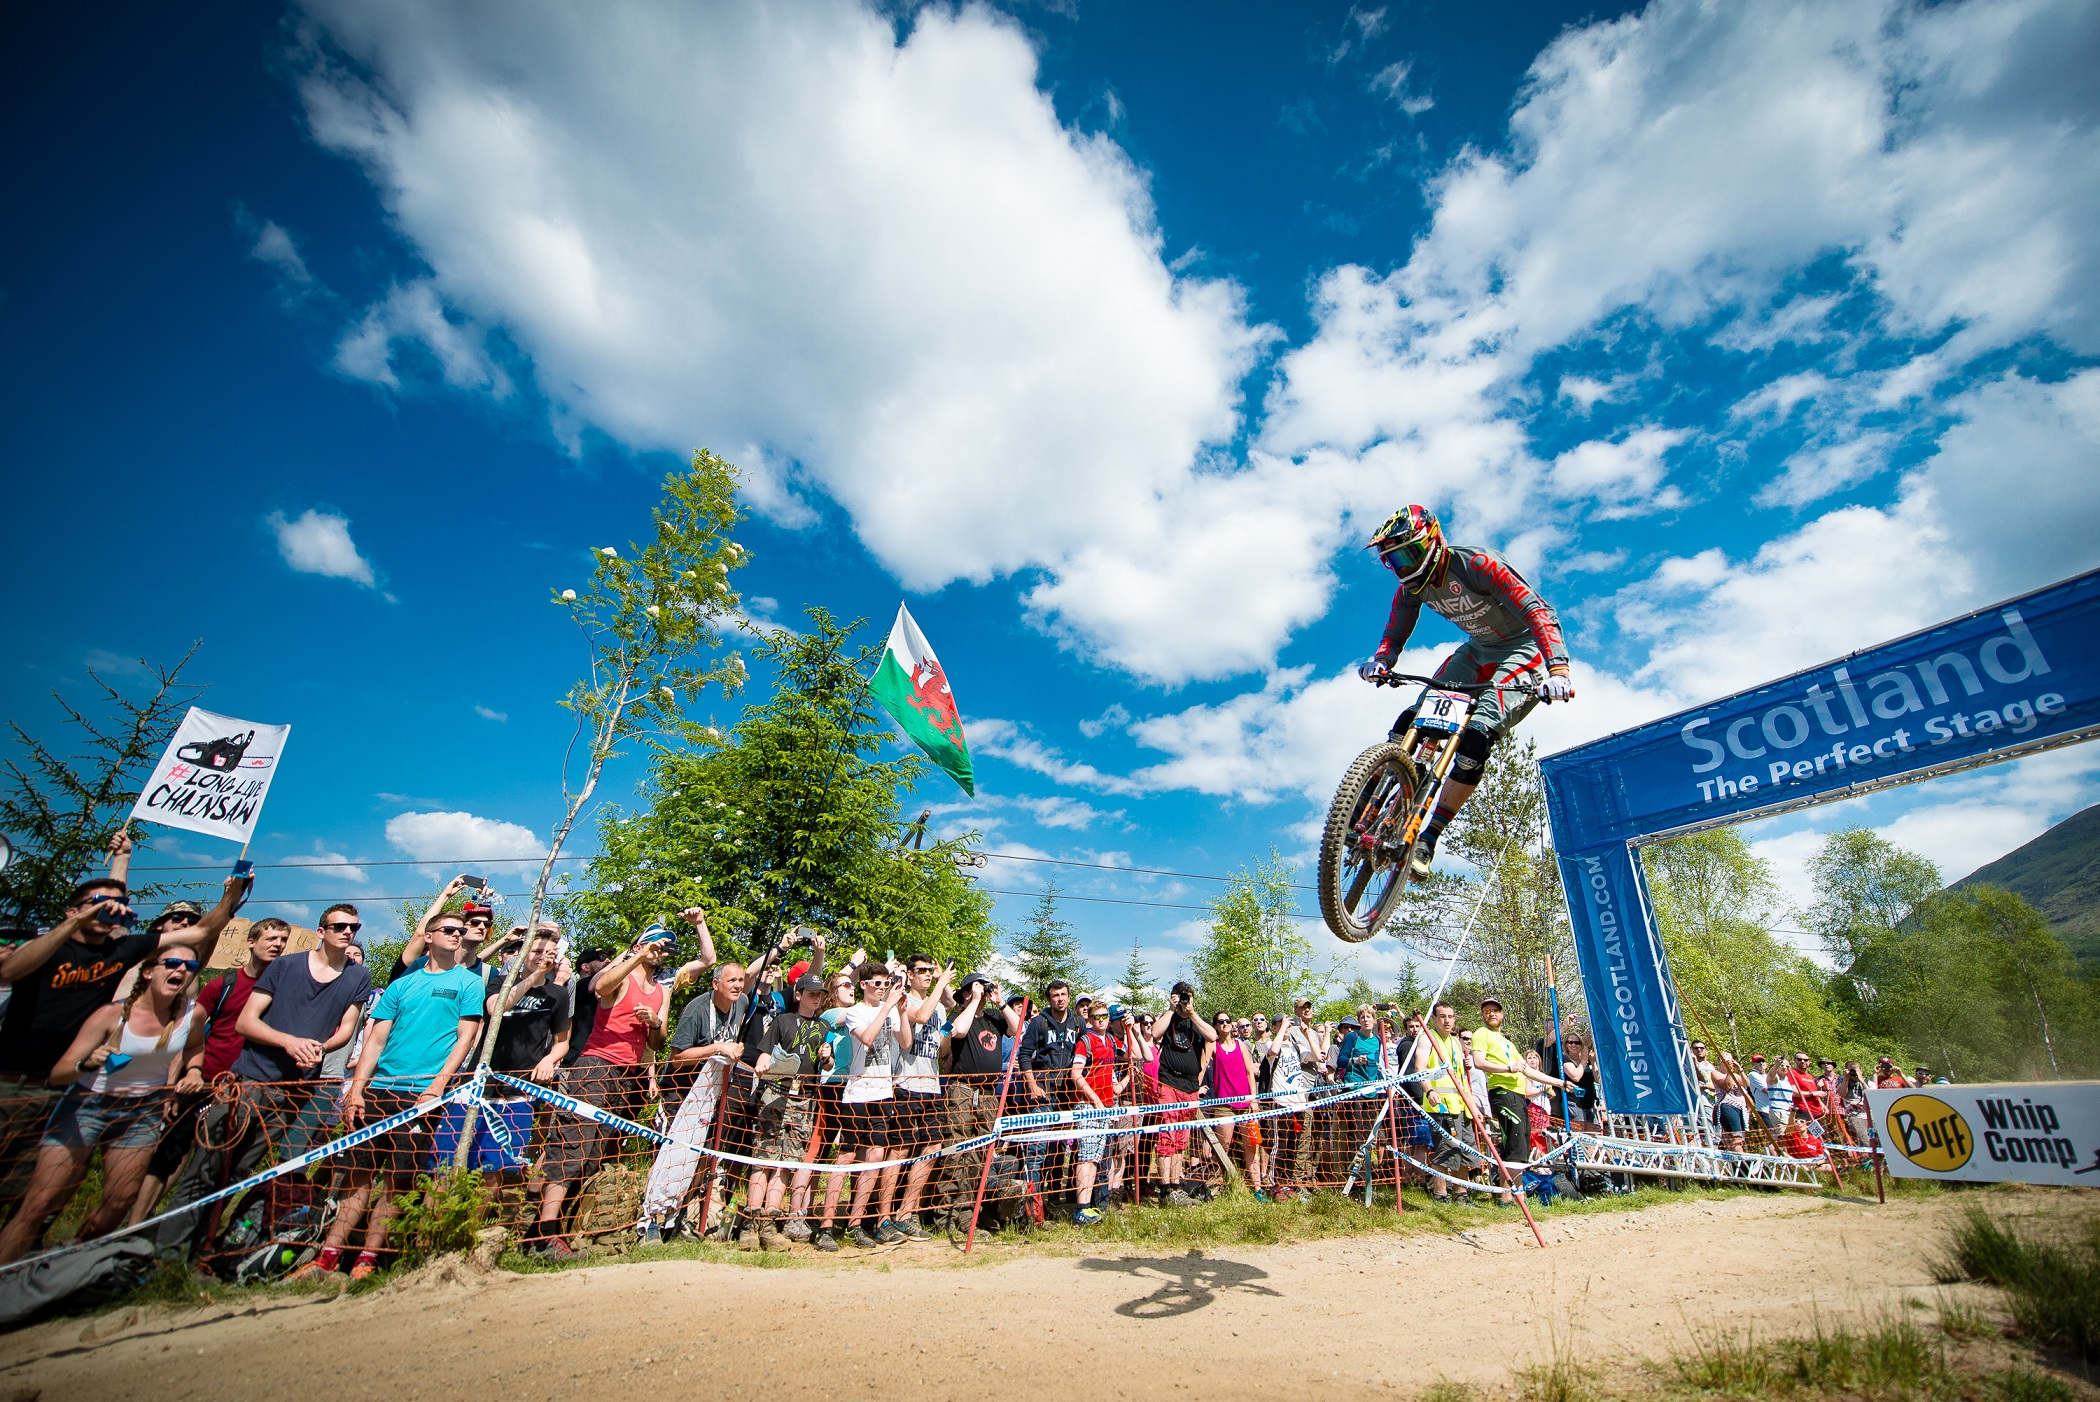 Greg Minnaar riding at the Fort William MTB World Cup - photo by Charne Hawkes